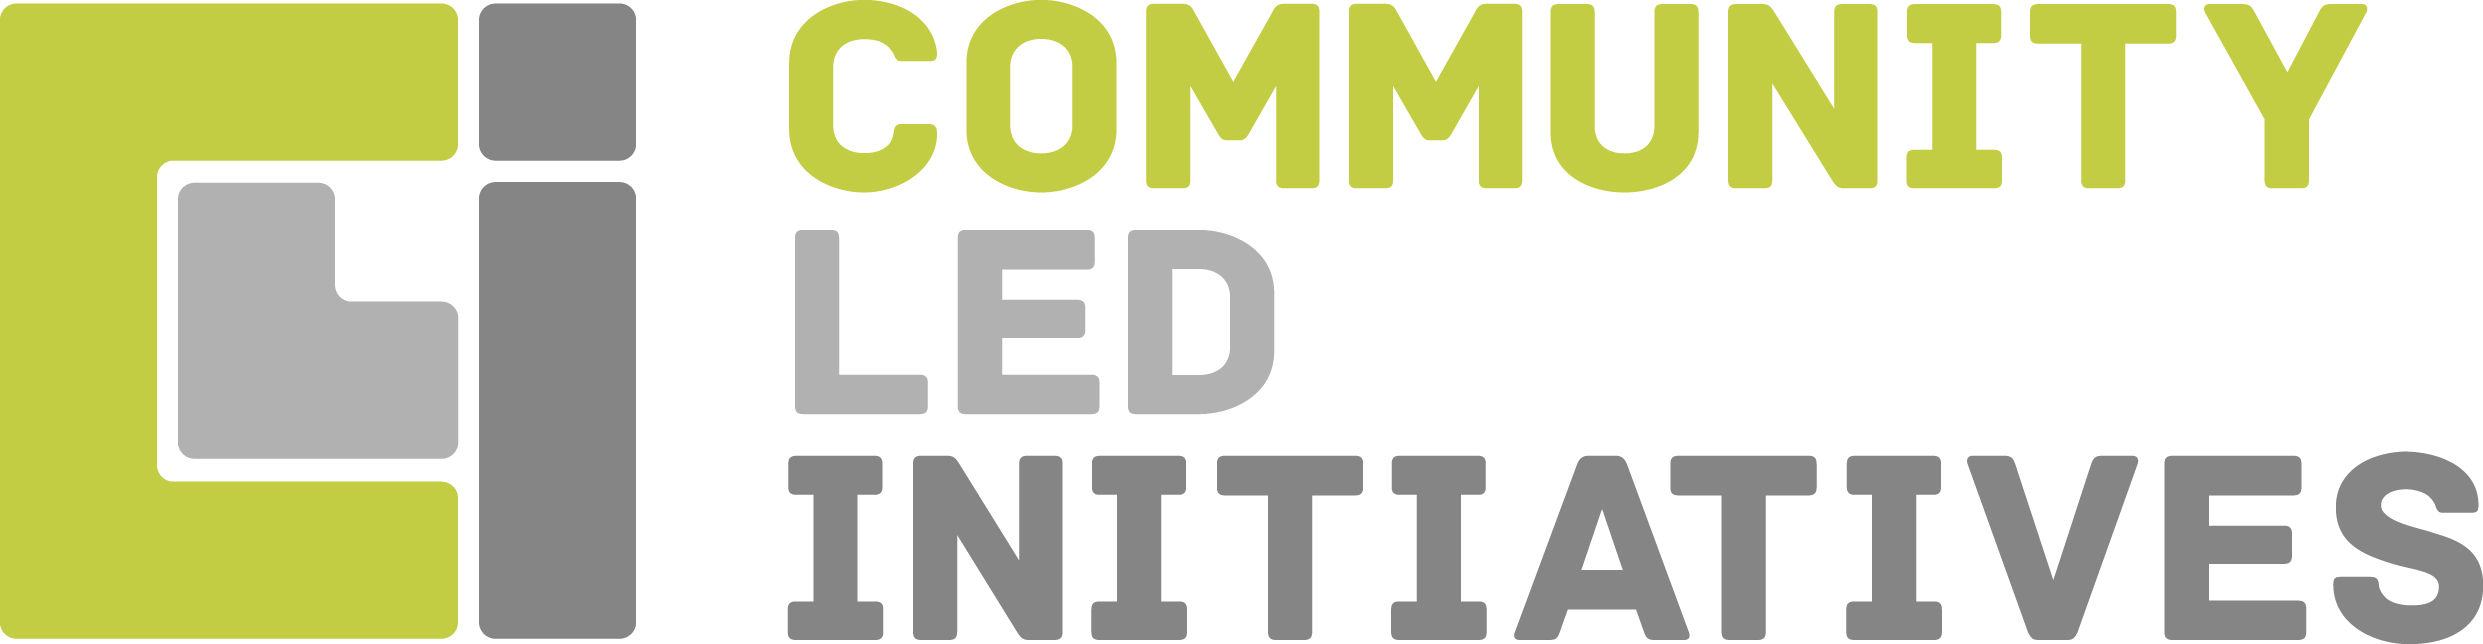 Community Led Initiatives